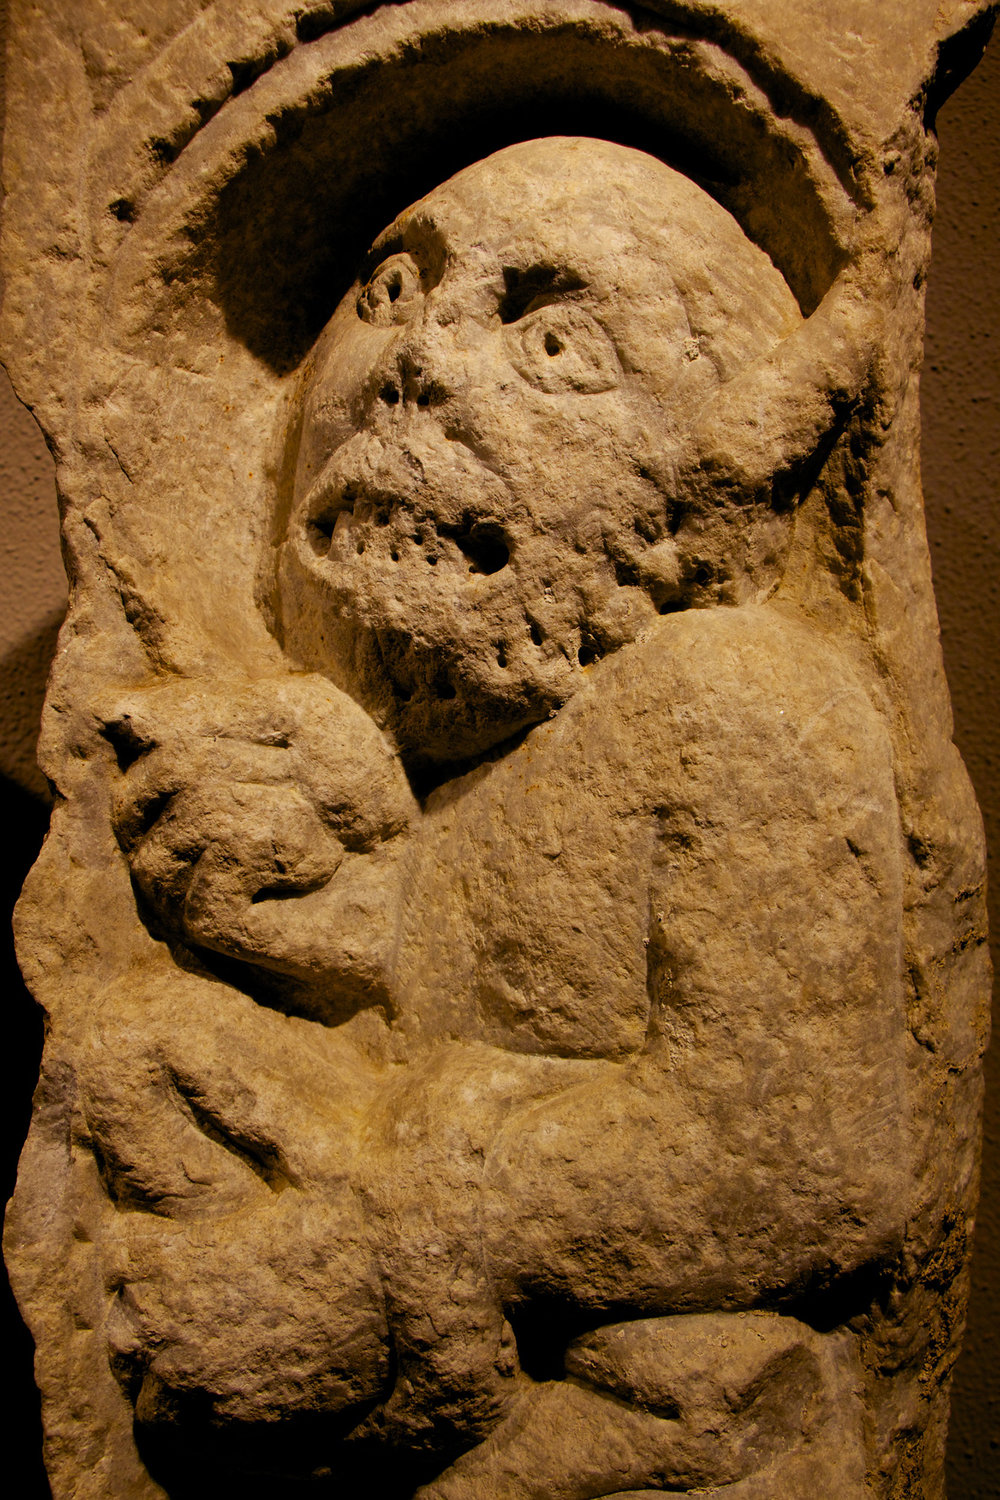 Figure 3: The devil holds a stone in his left hand with his tail draped over his arm.